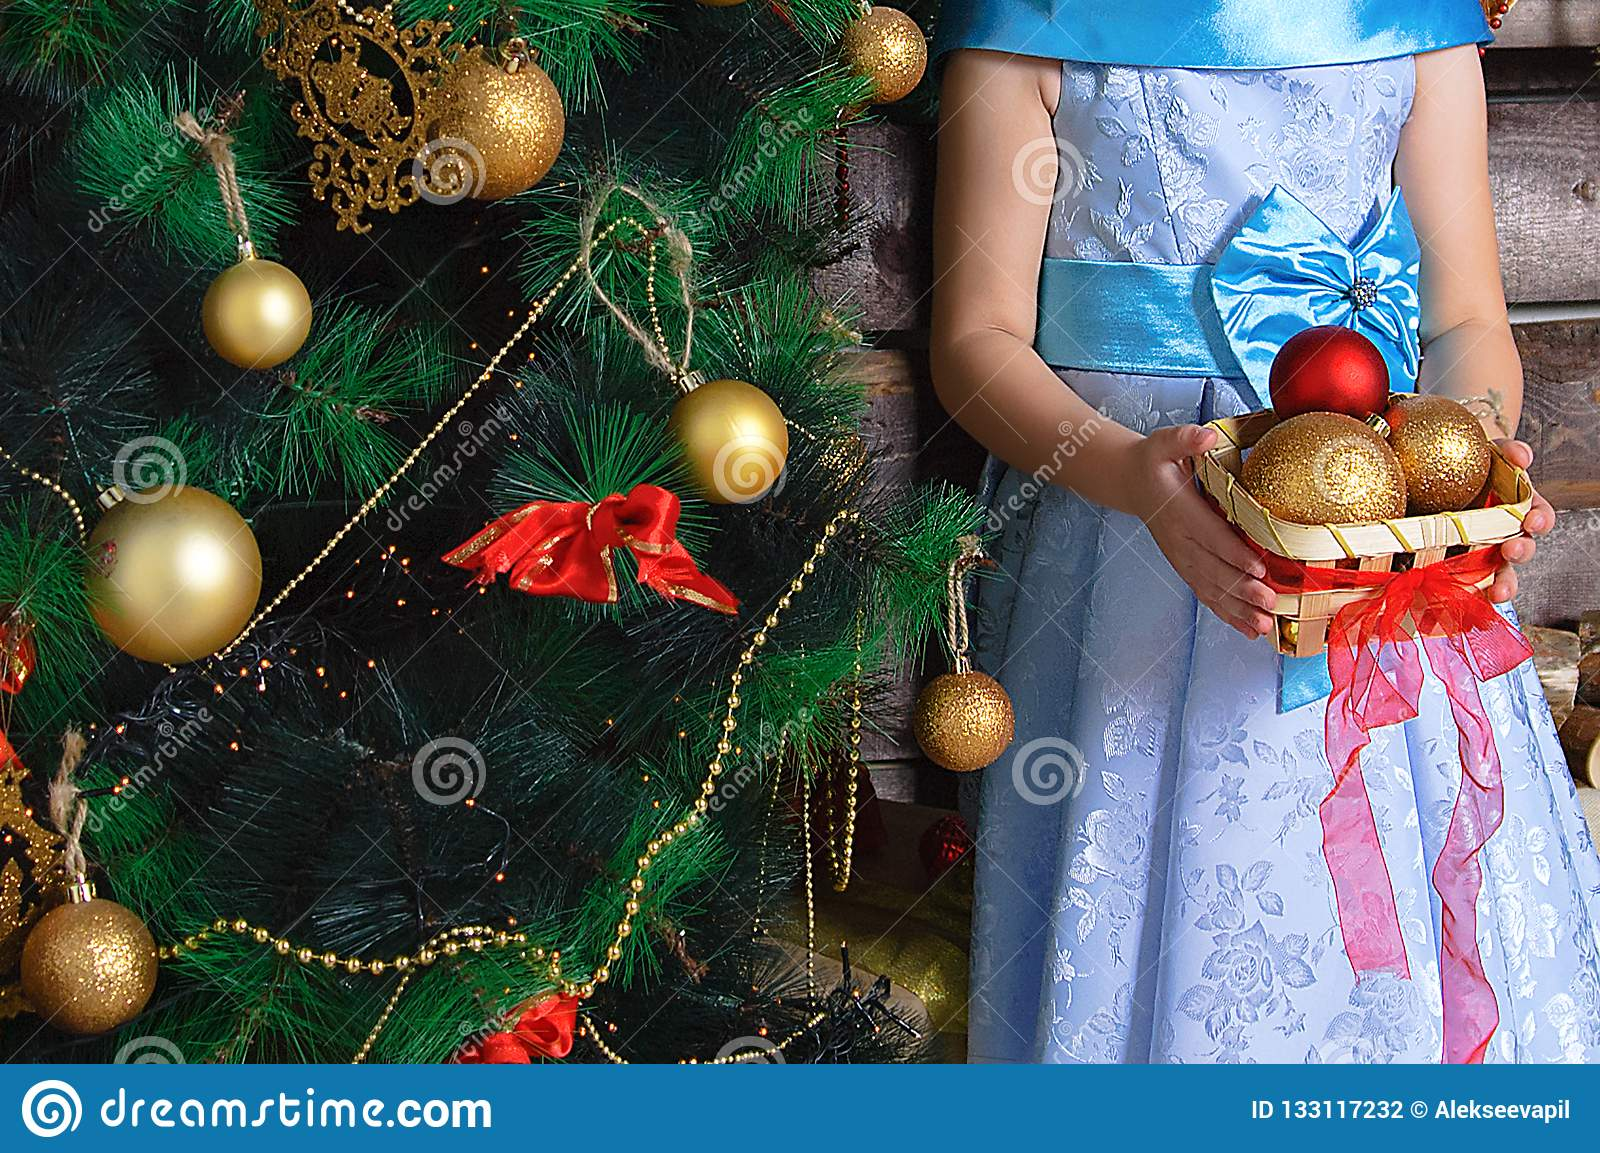 Little Girl With A Basket Of Christmas Decorations. It